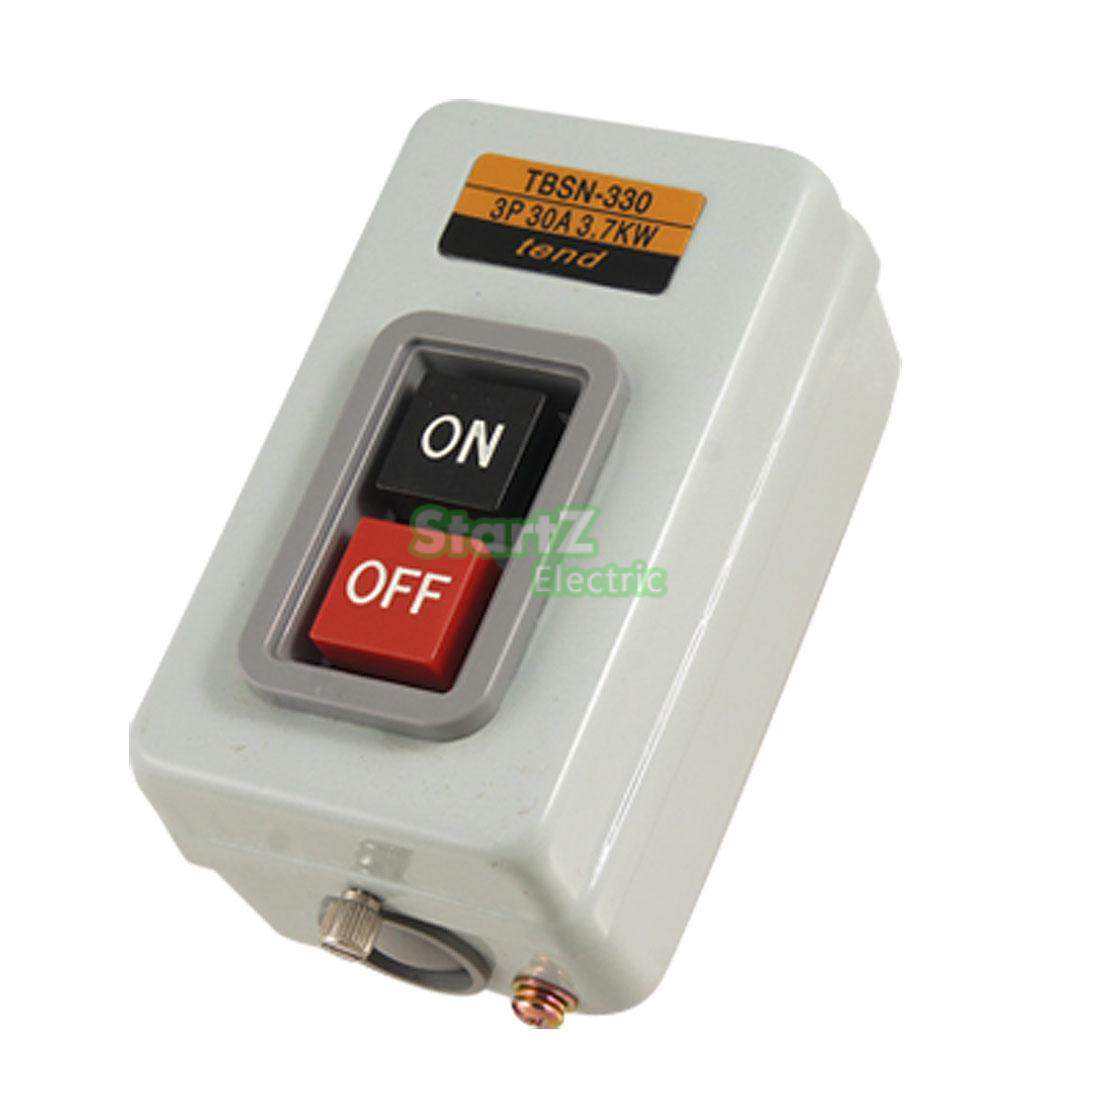 Rectangle Metal Box ON OFF Position Push Button Switch AC 380V 3.7Kw TBSN-330 5pcs lot high quality 2 pin snap in on off position snap boat button switch 12v 110v 250v t1405 p0 5